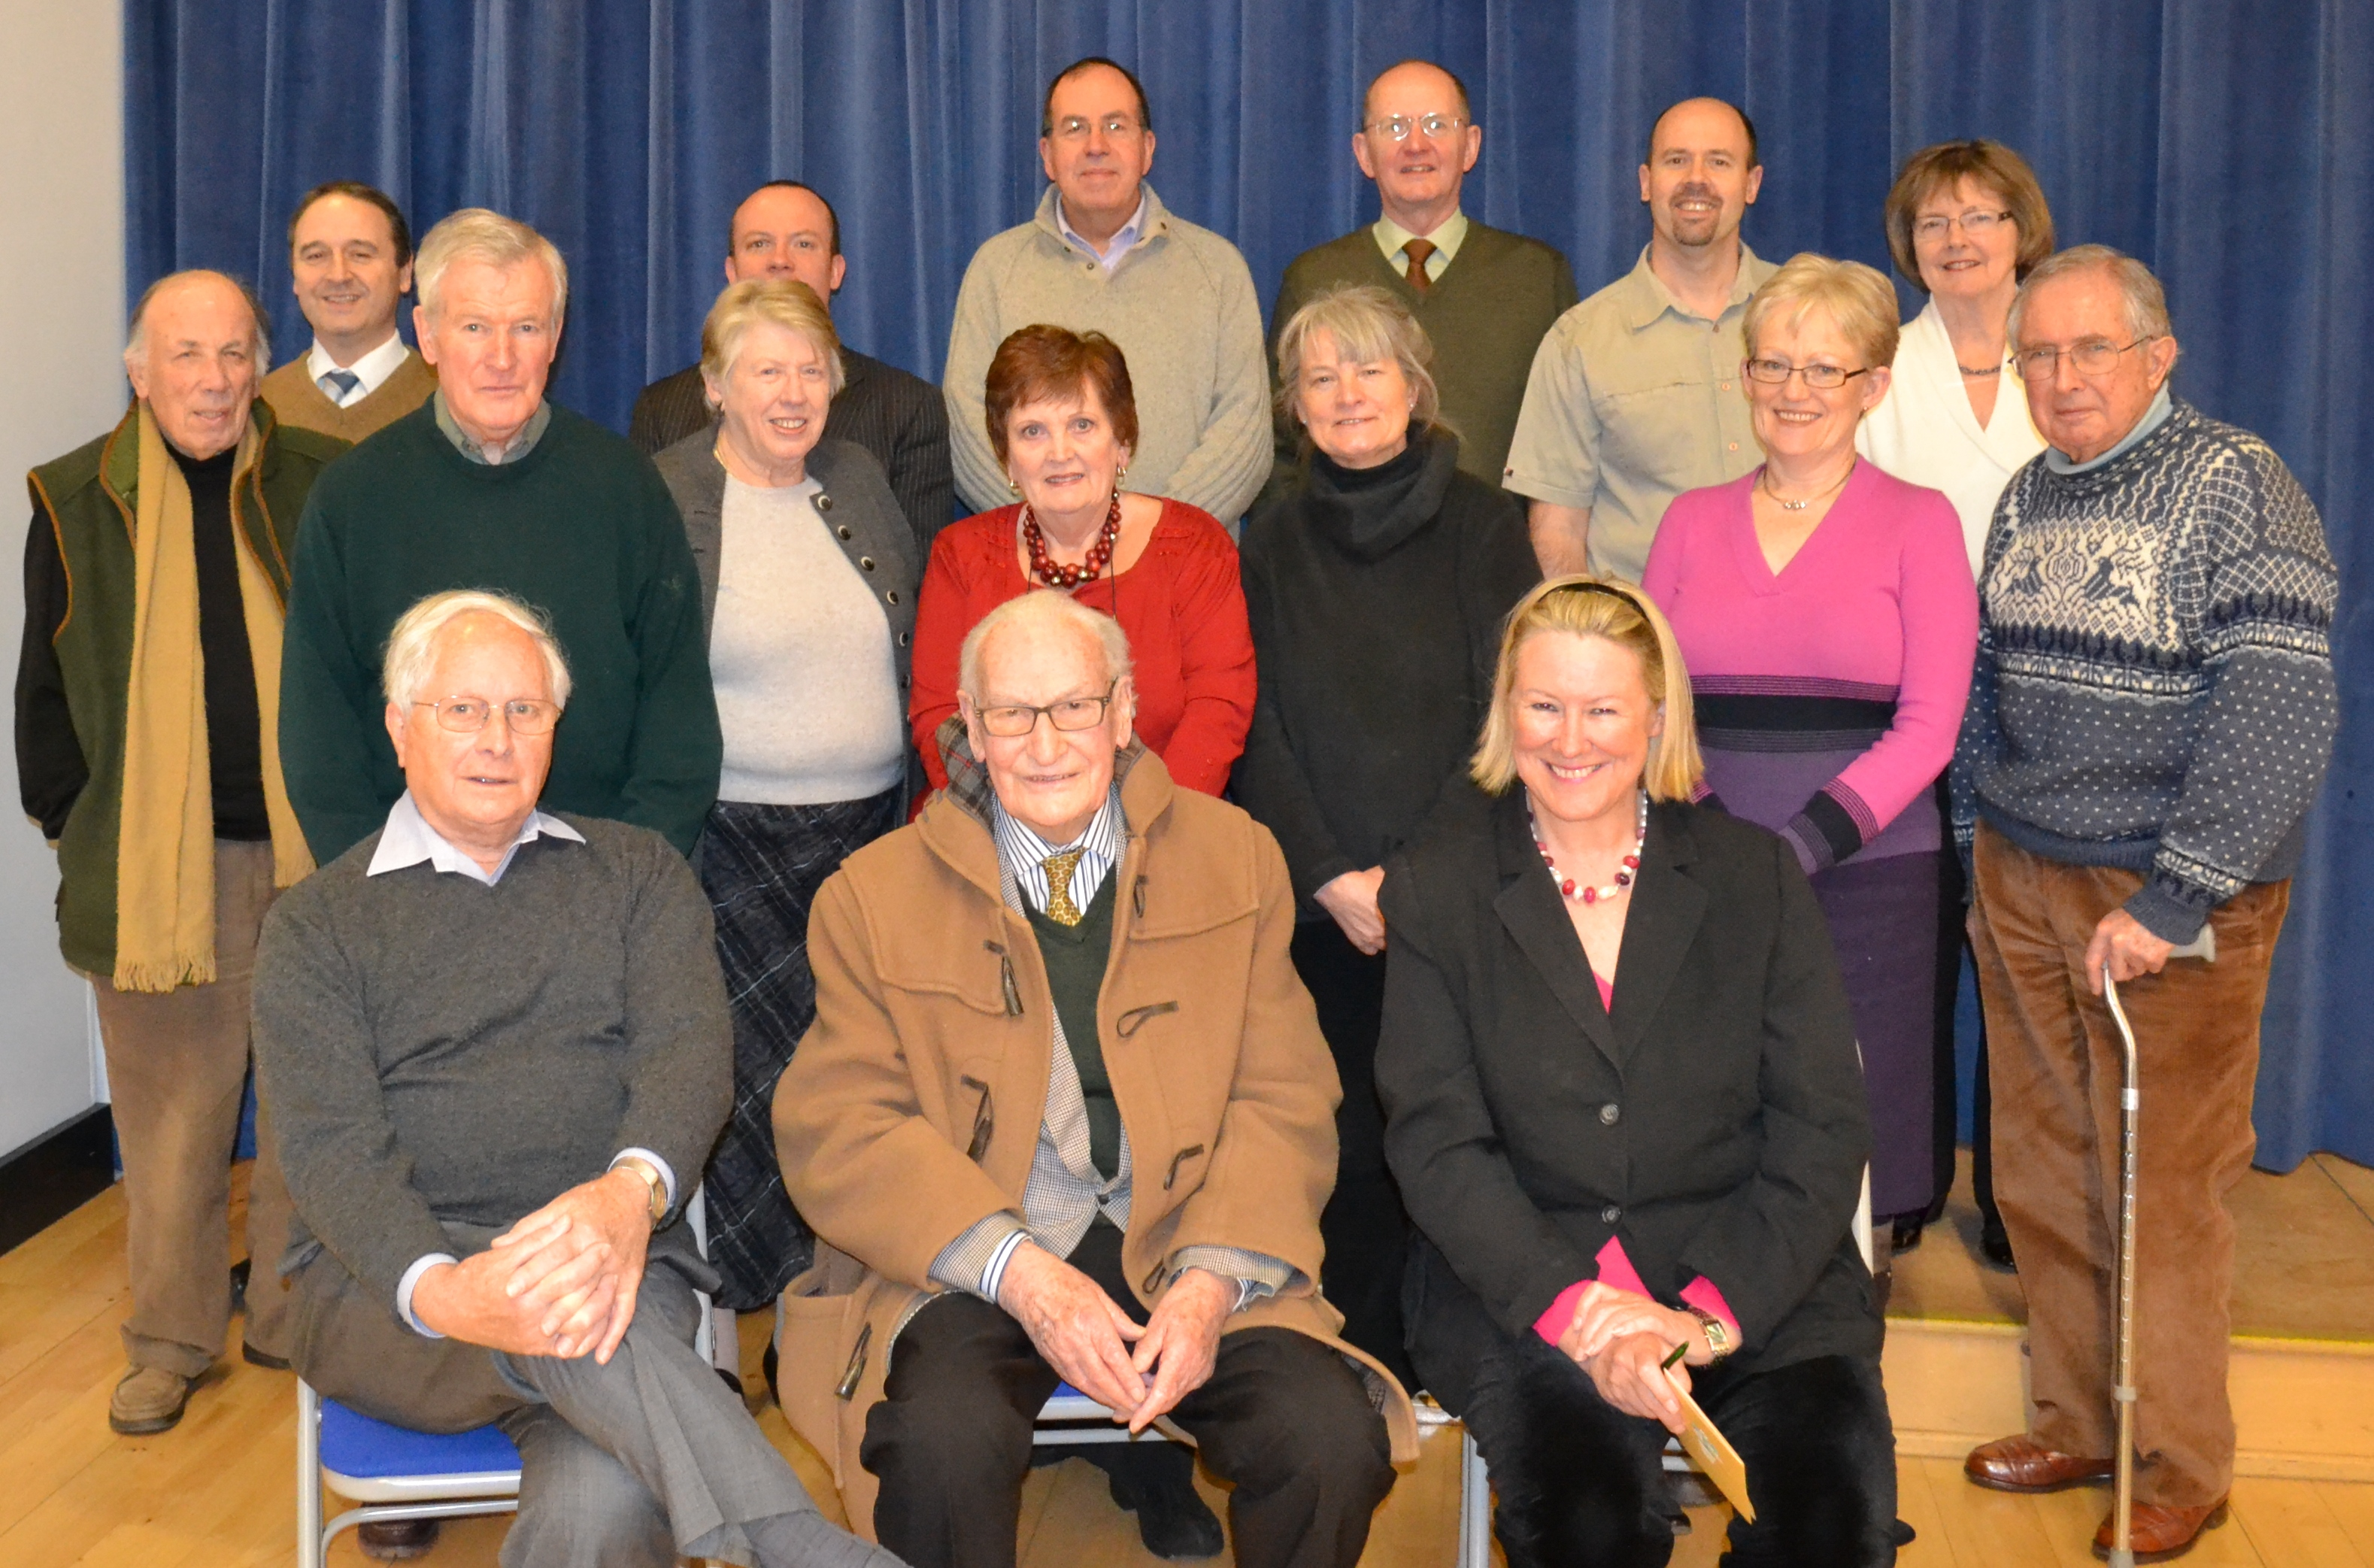 epping-society-group-agm-2013